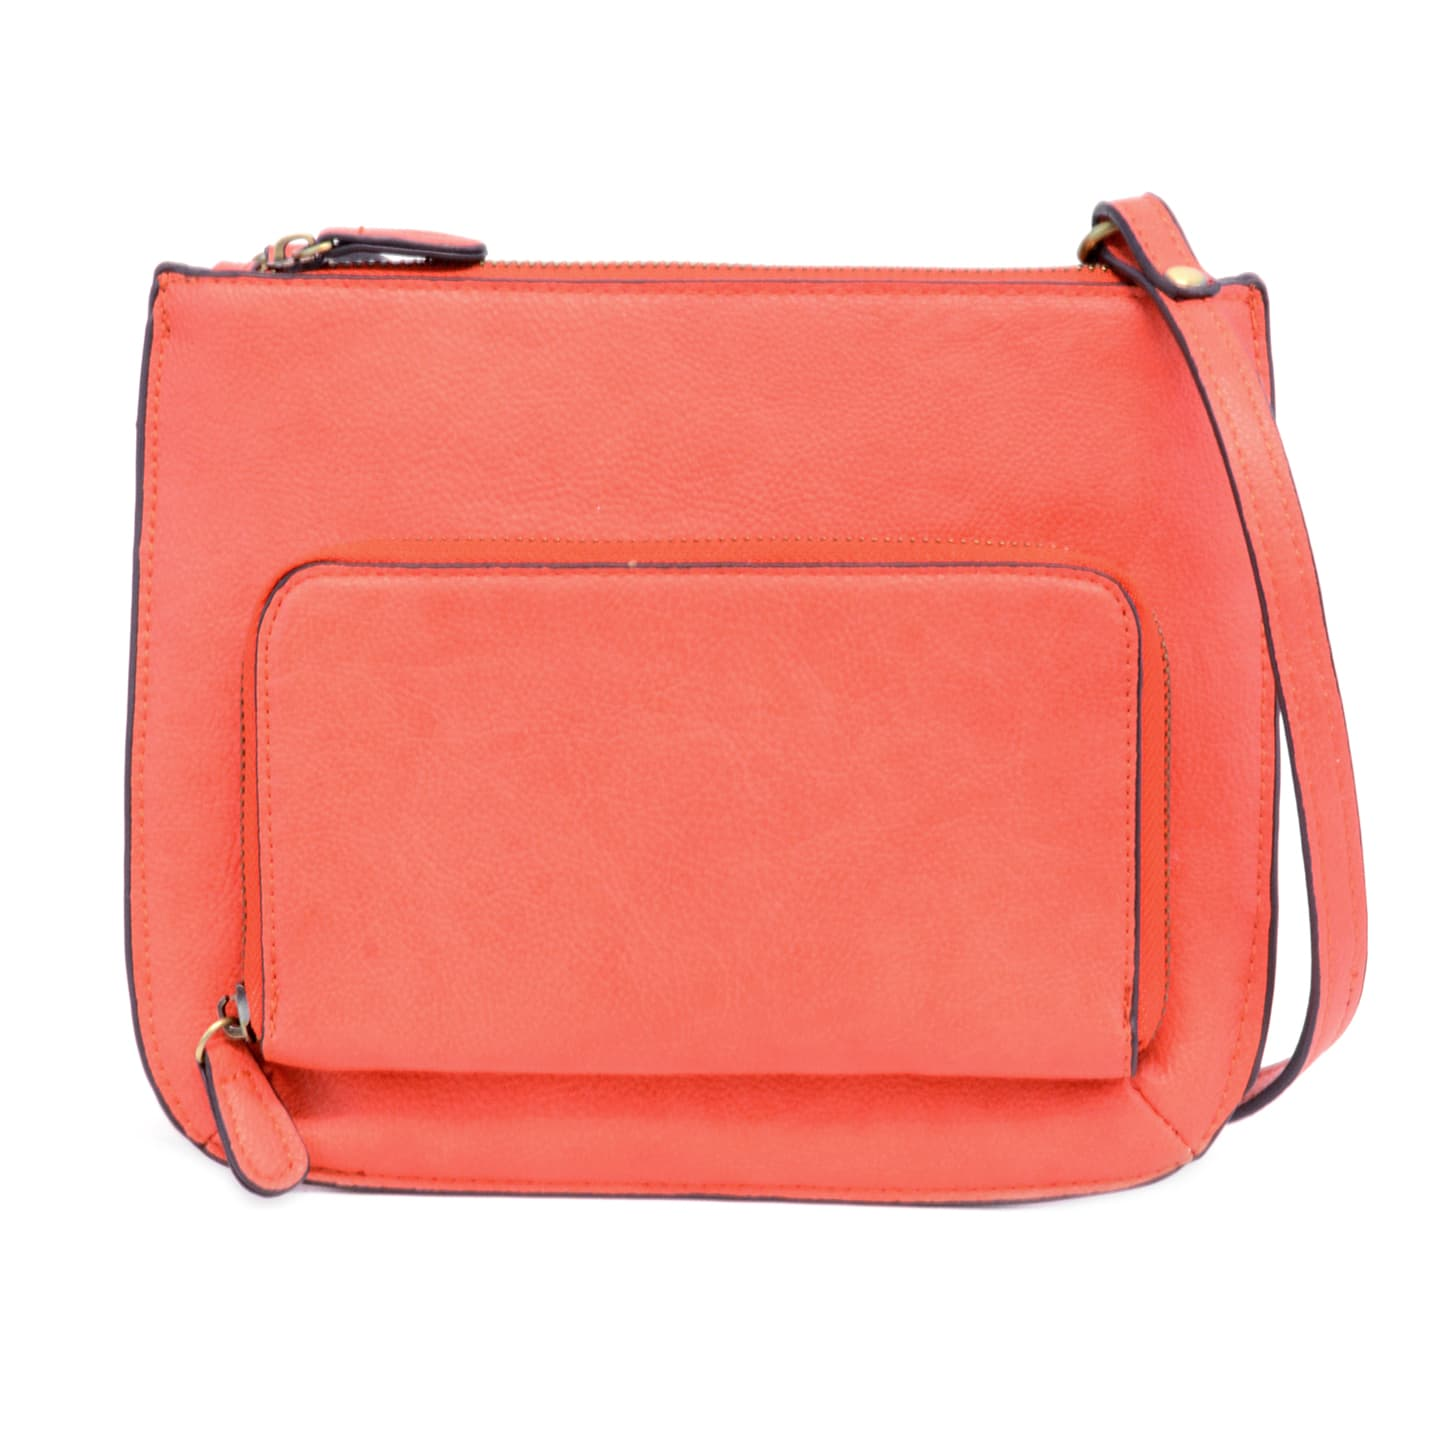 Crossbody Bag with Exterior Pocket - Coral